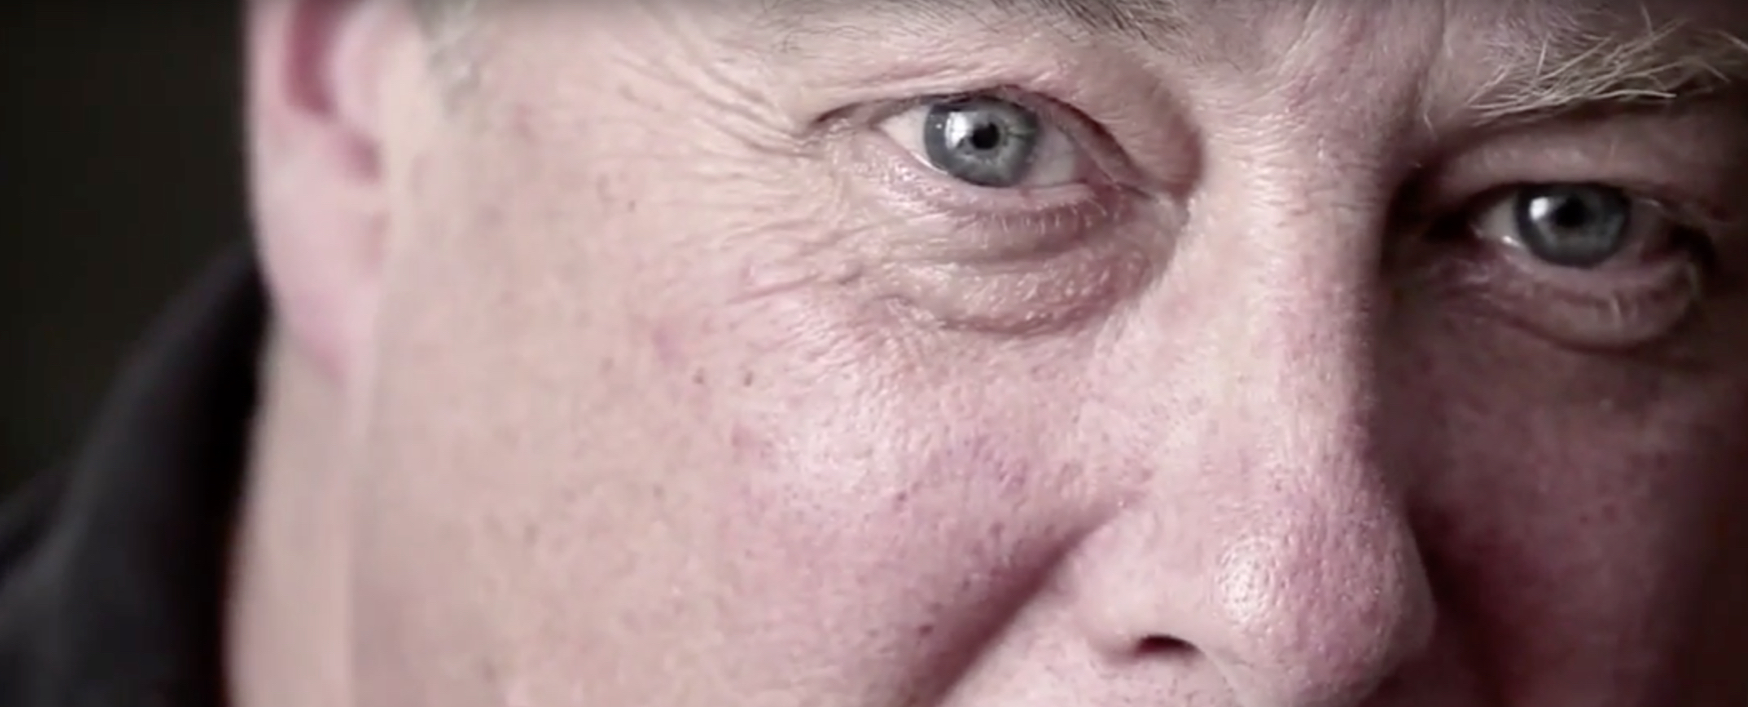 A close-up of a man's eyes as he tells an emotional story.